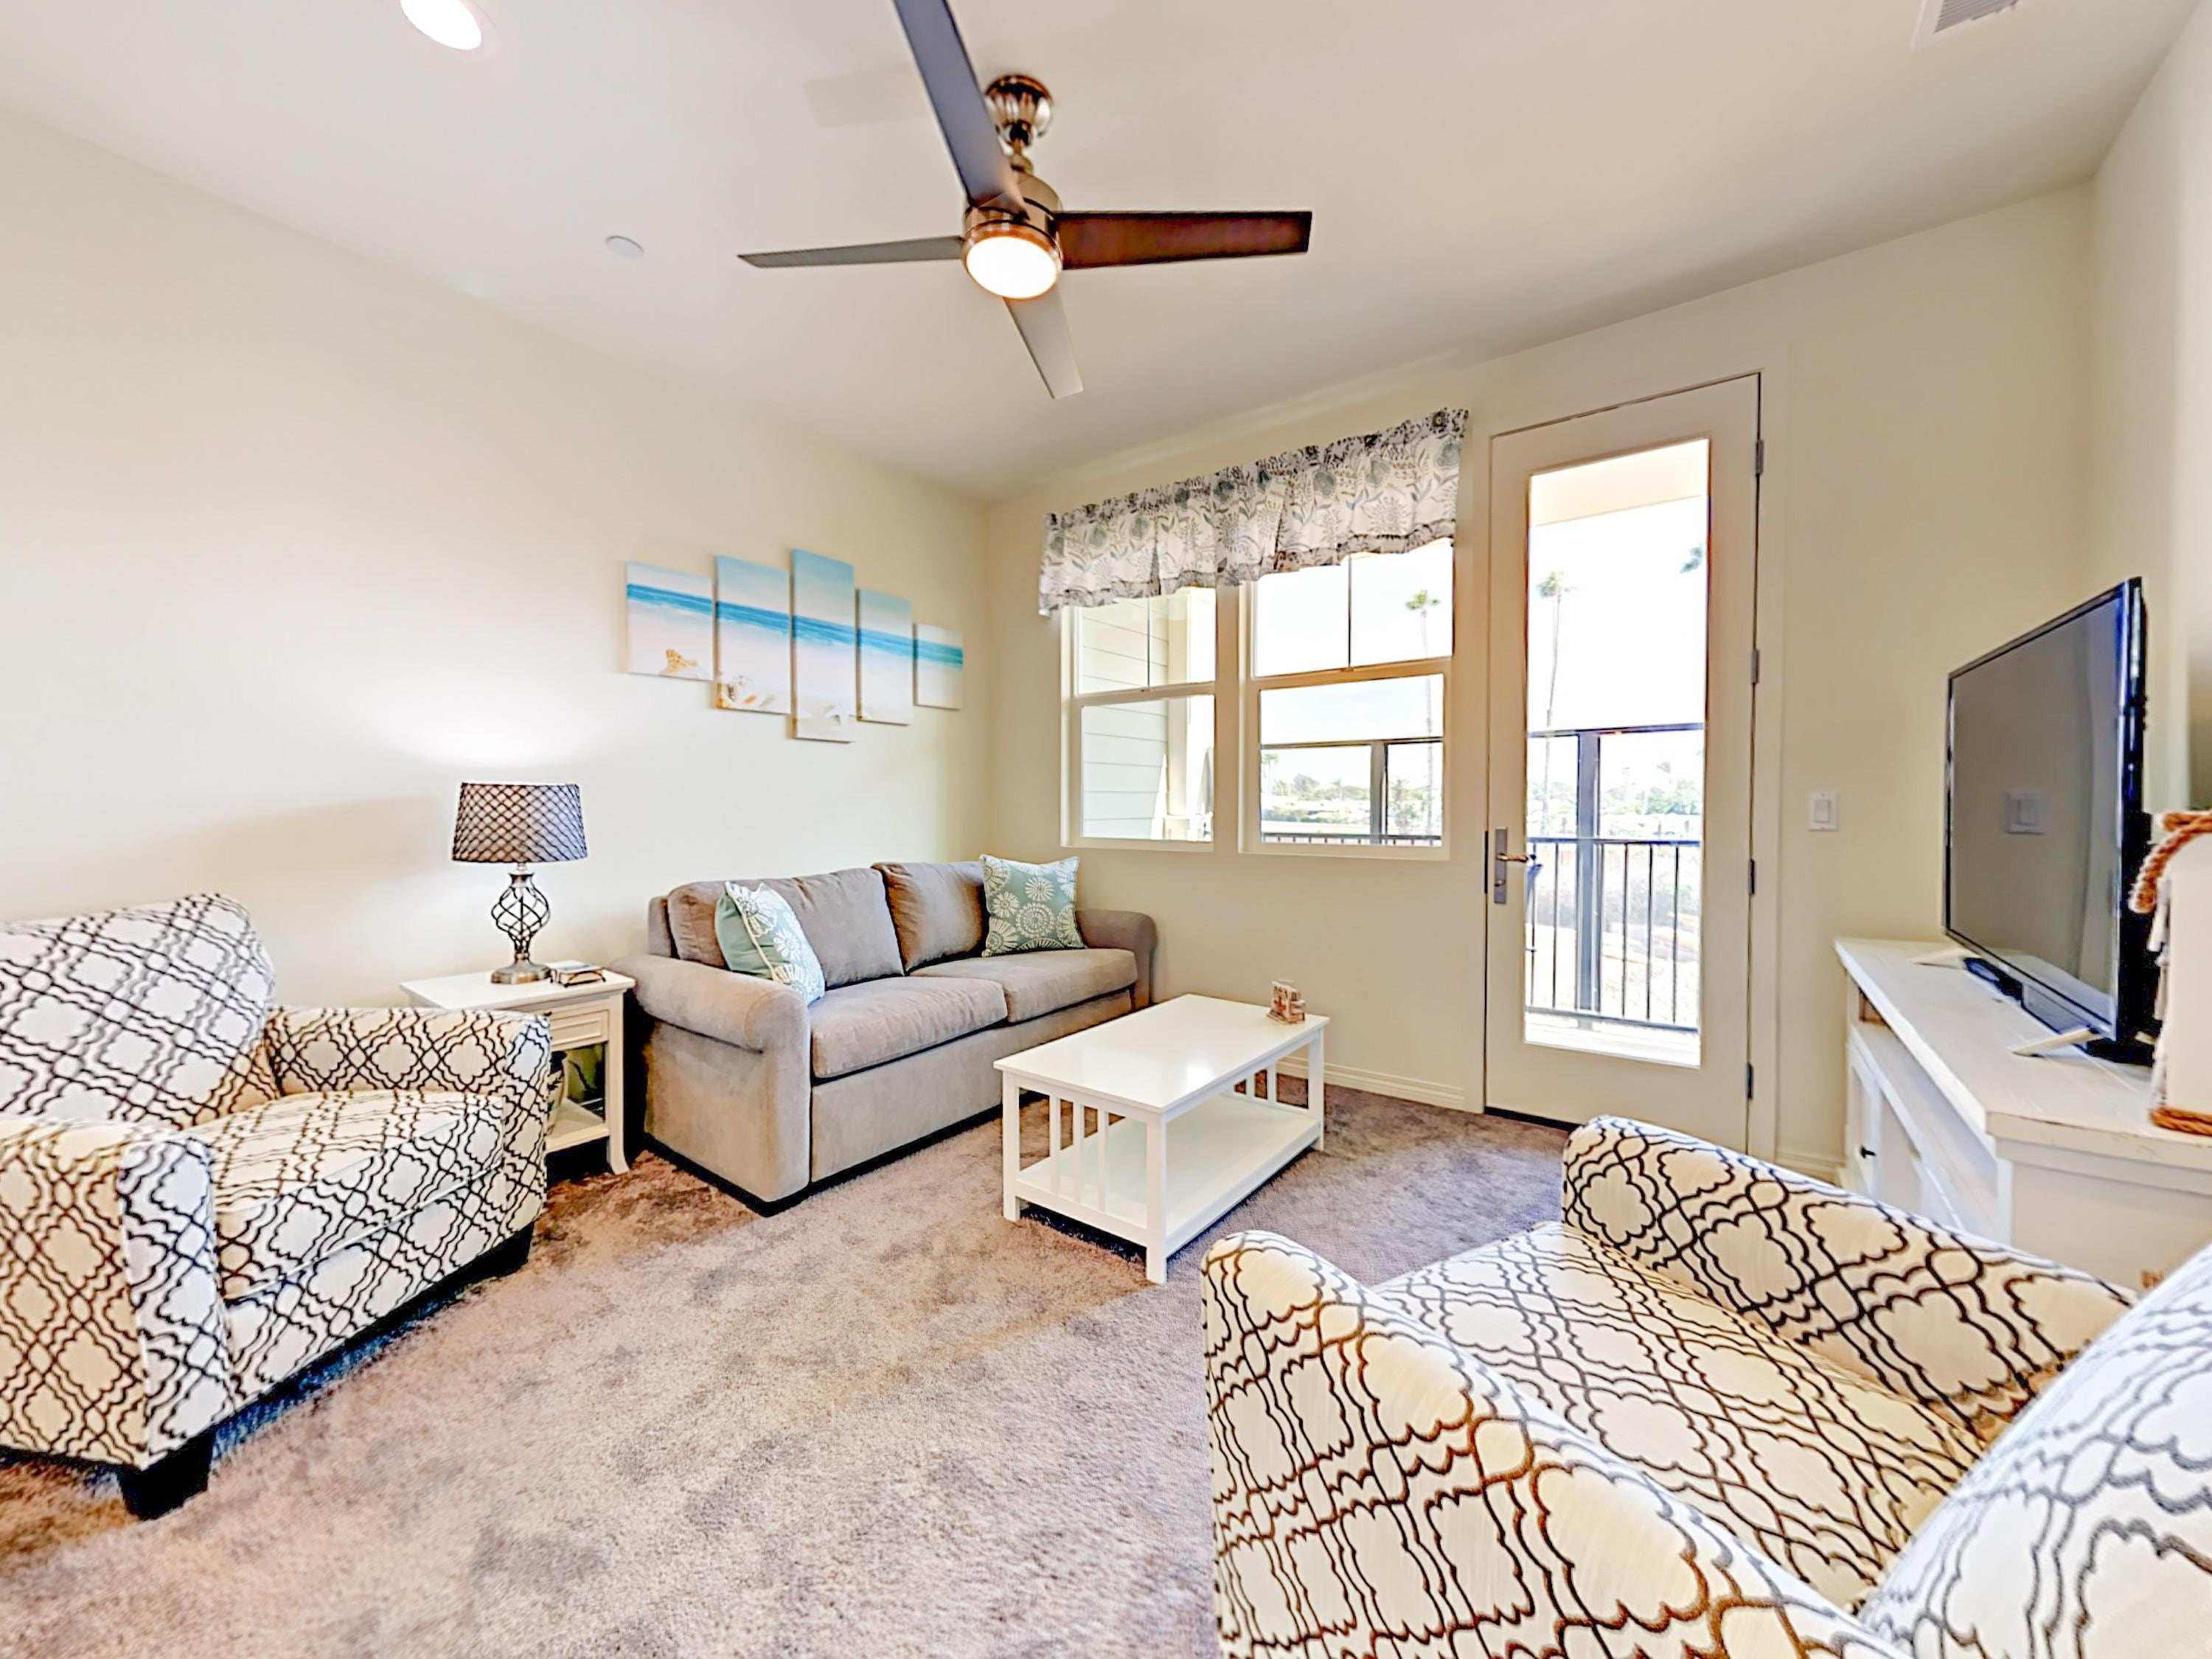 Welcome to San Diego! This brand-new townhome is professionally managed by TurnKey Vacation Rentals.